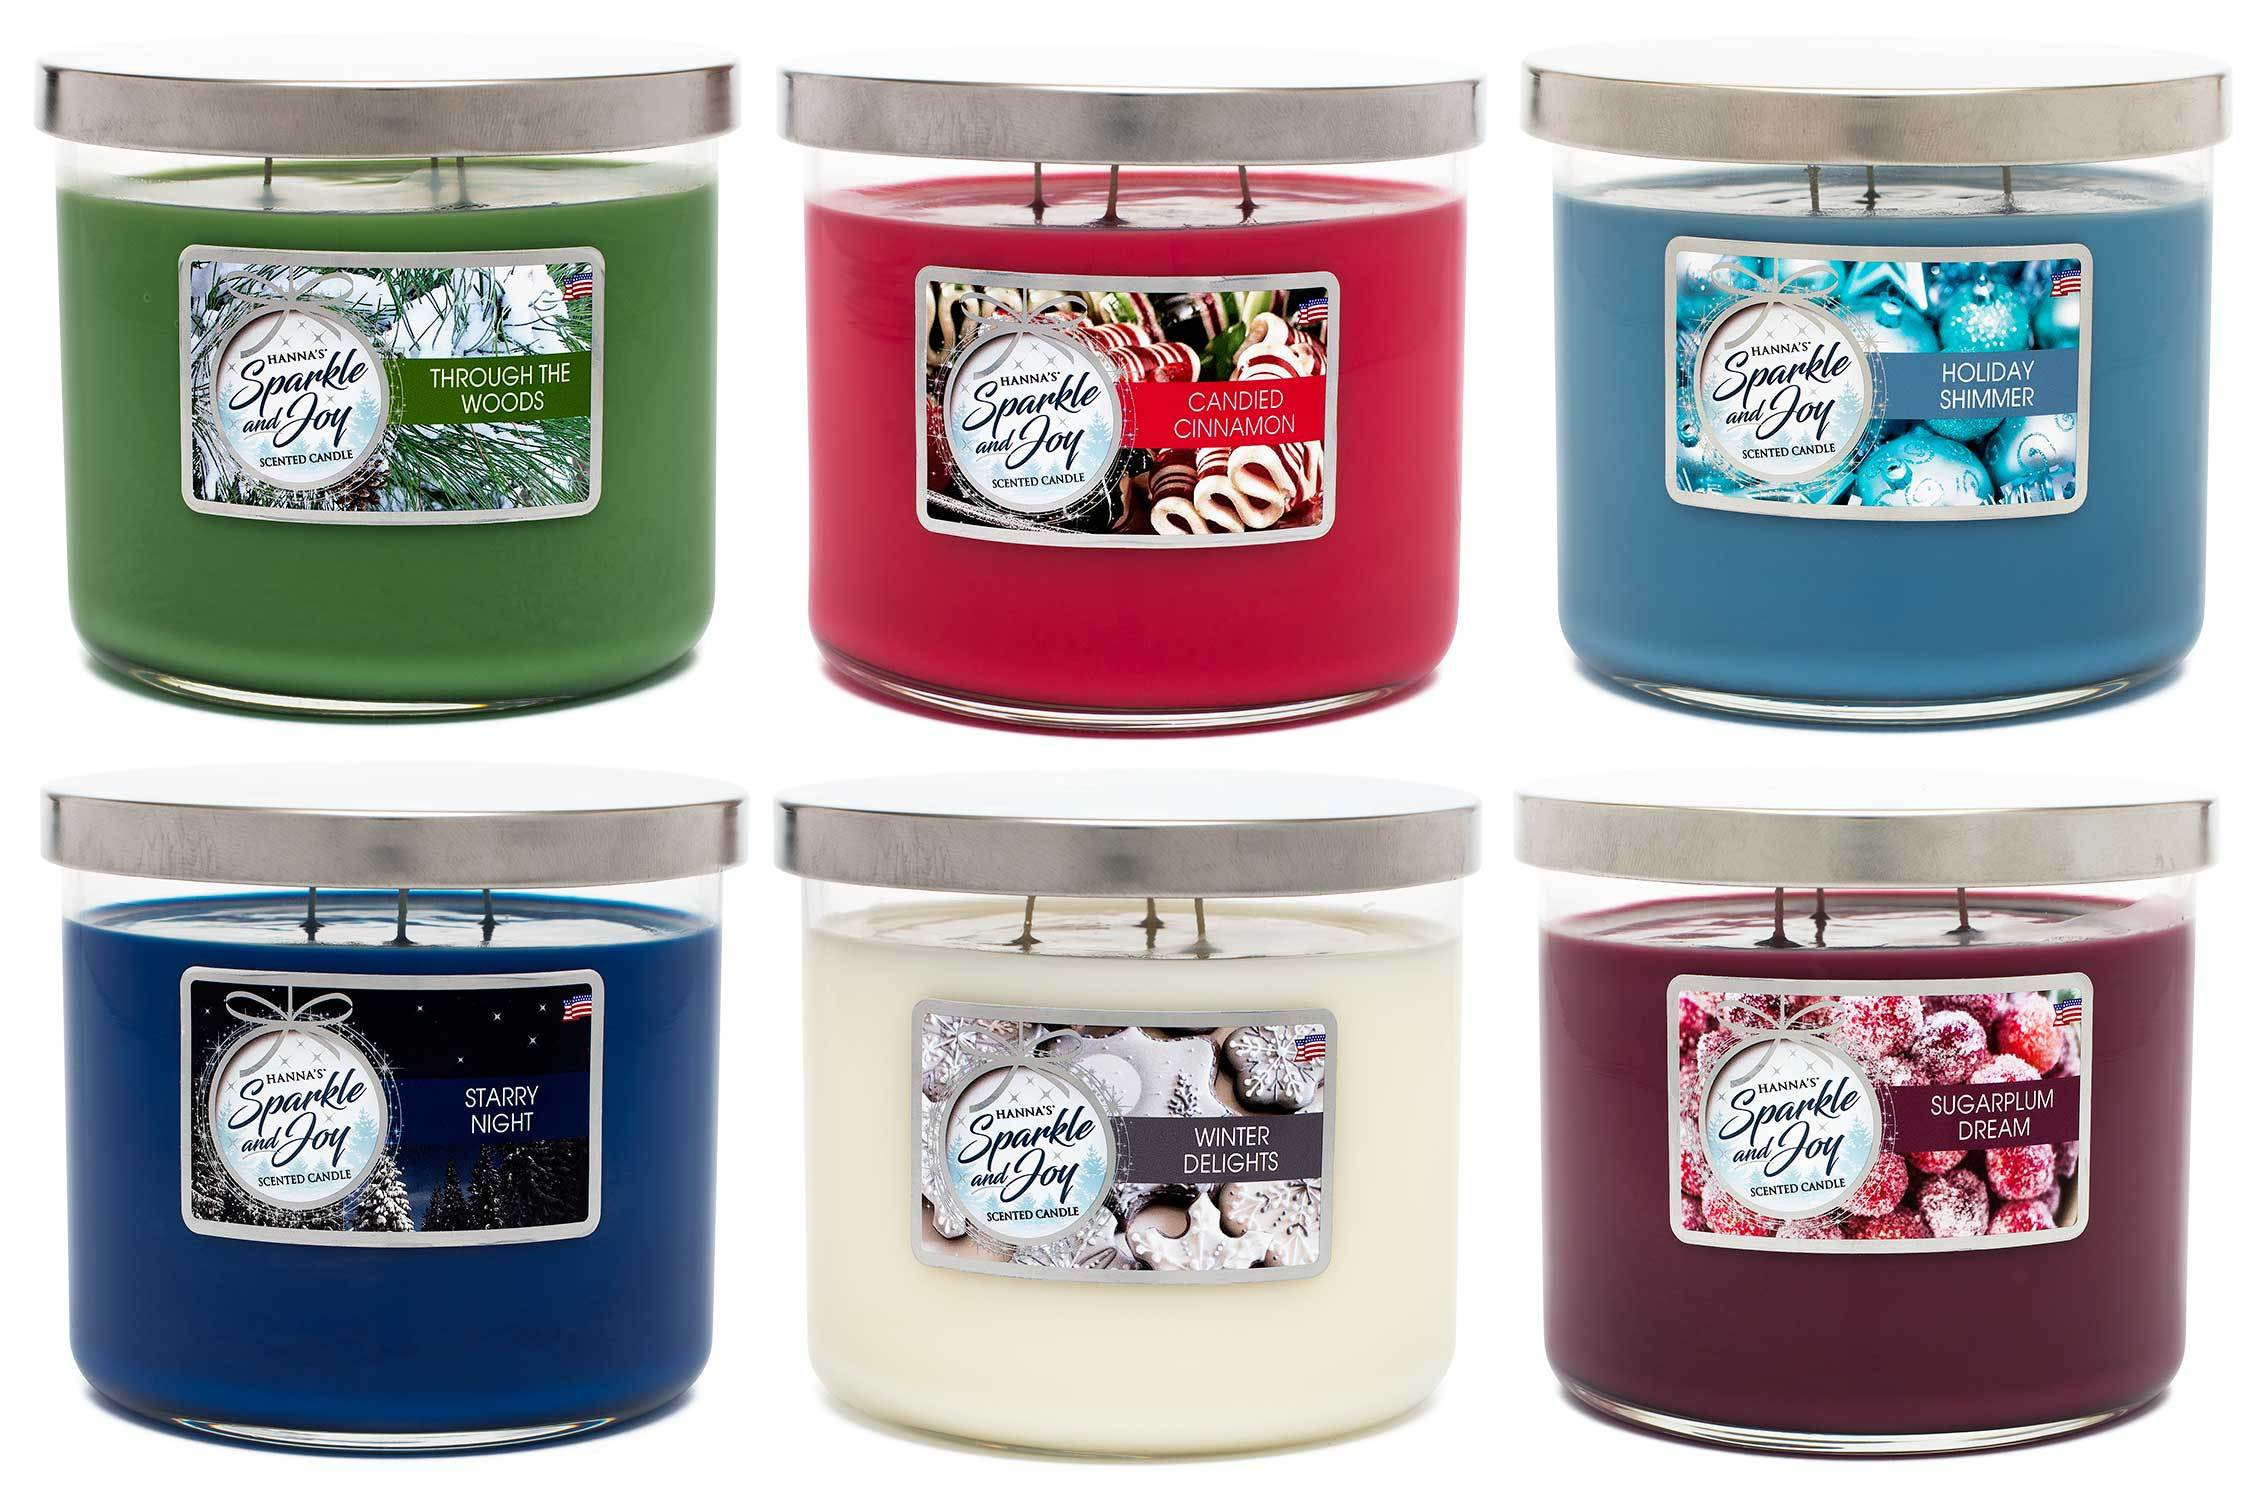 Holiday Shimmer Scented Large 3 wick Candle - Candlemart.com